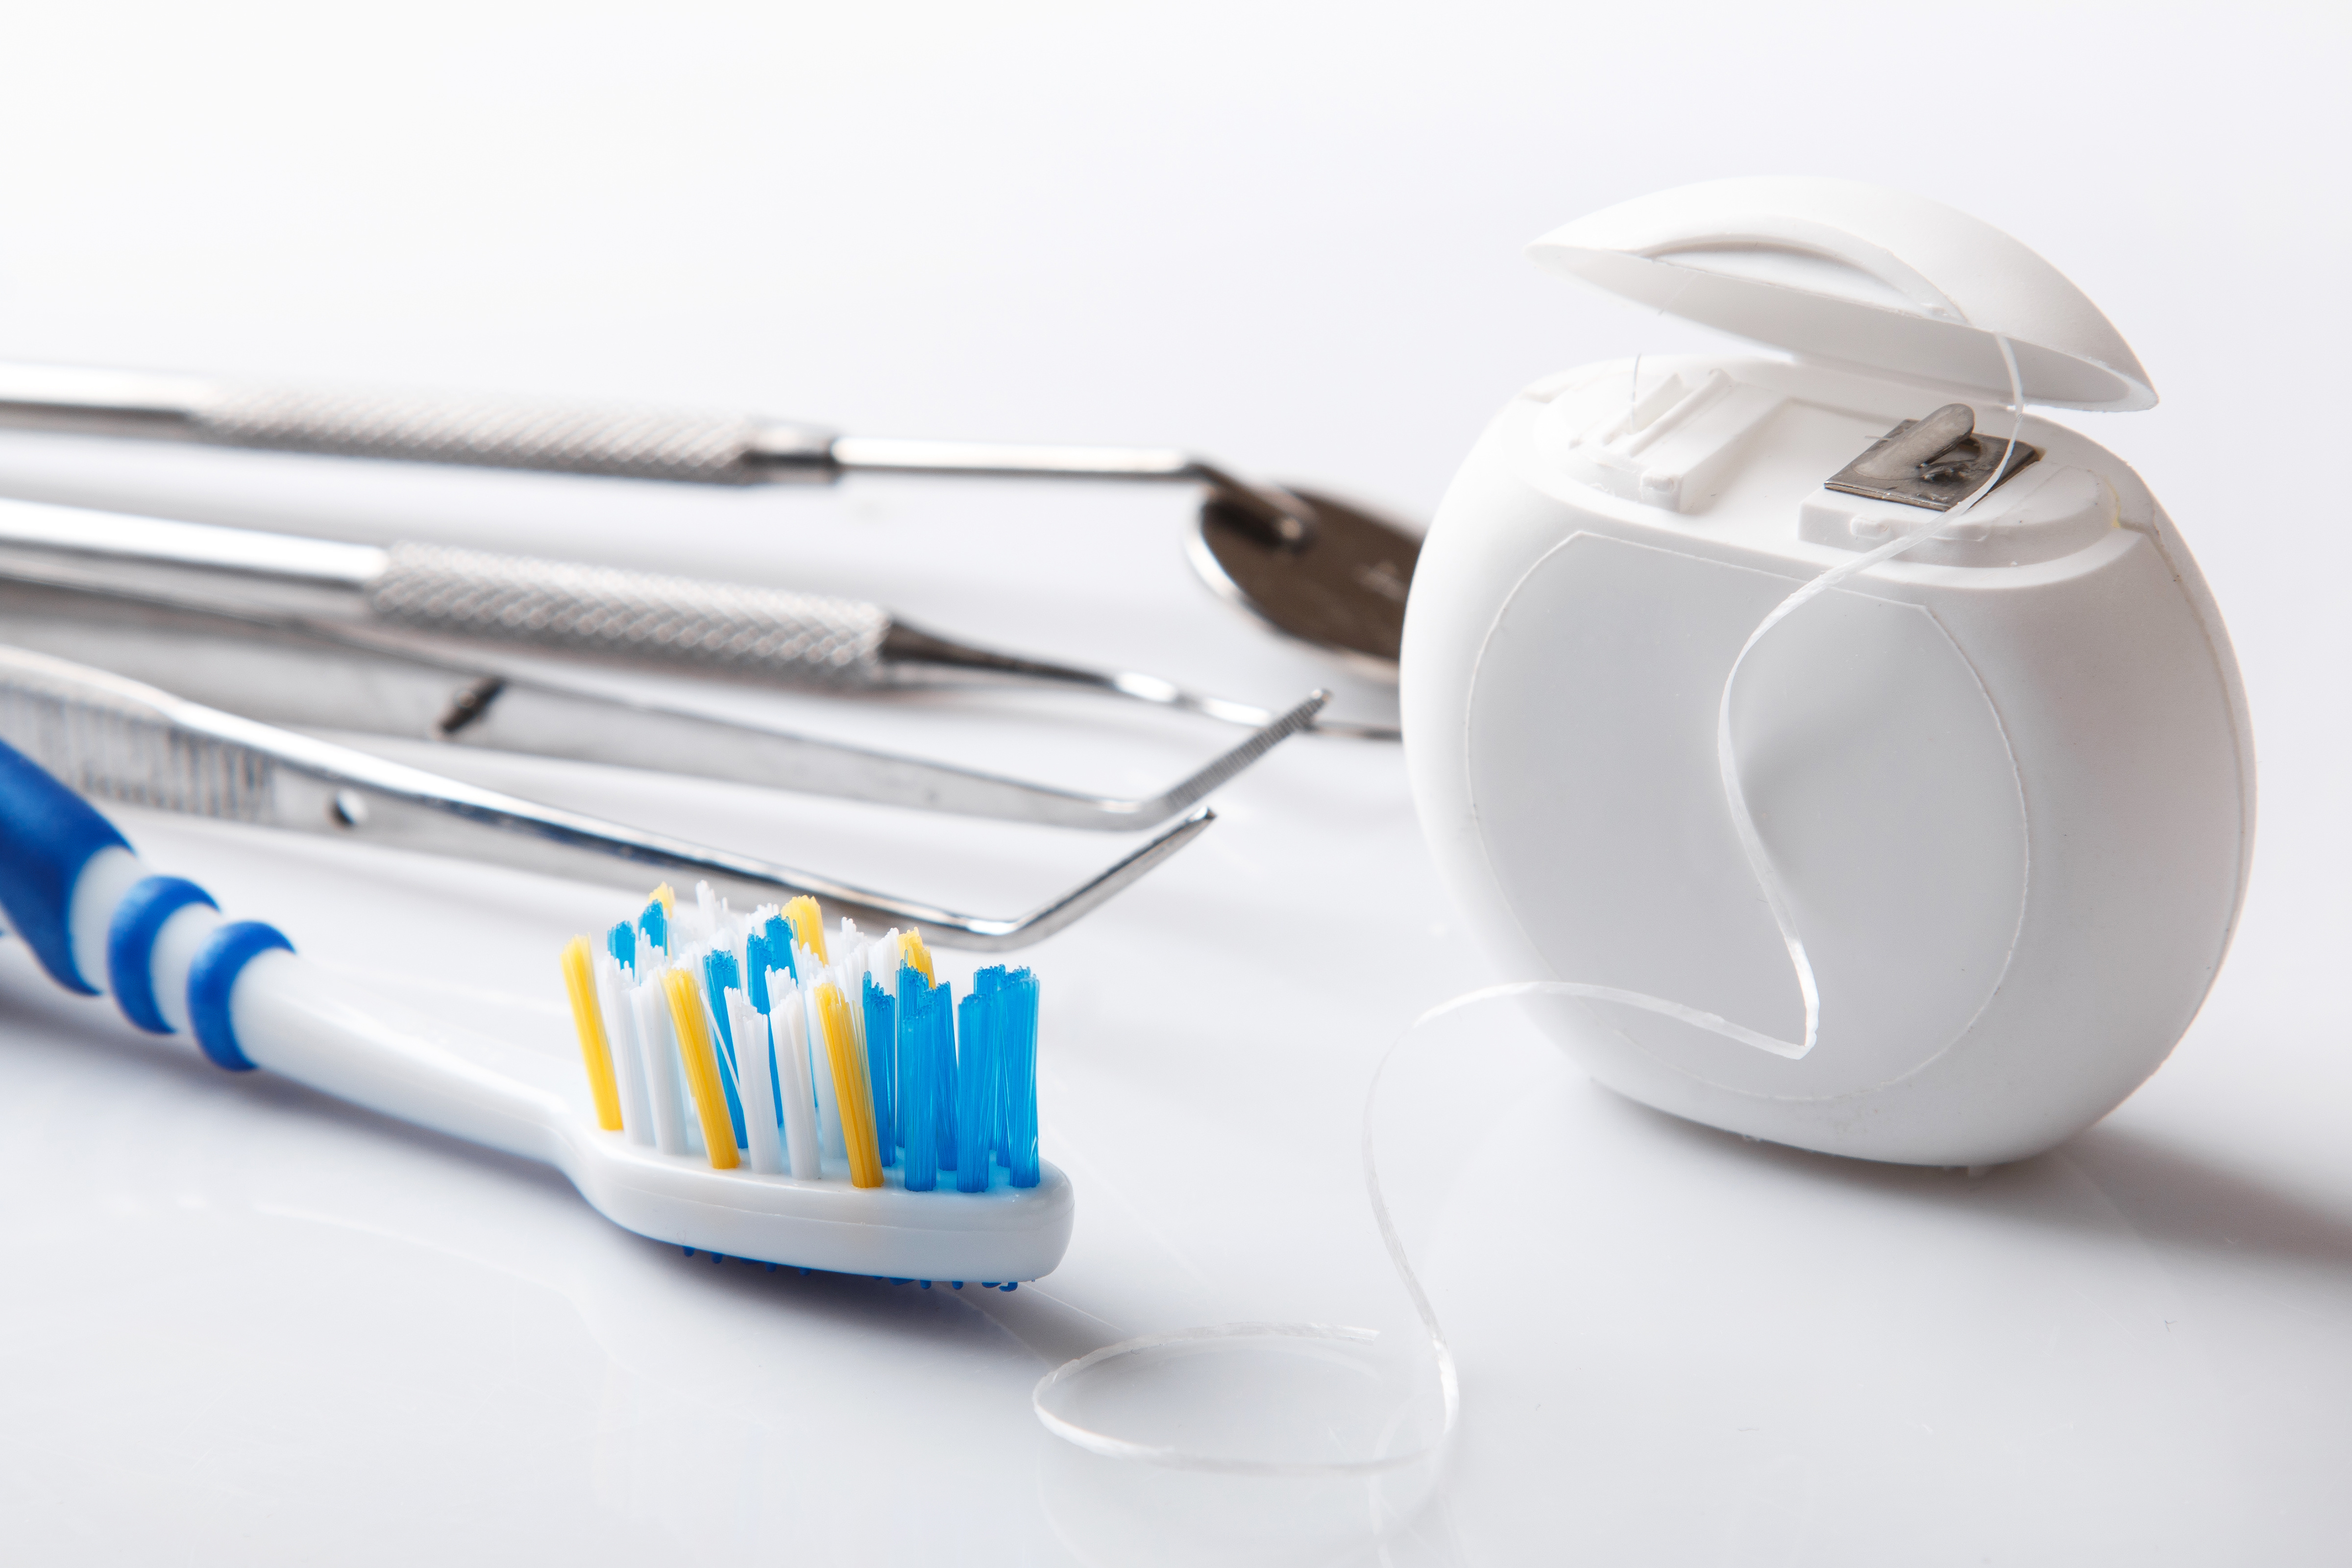 Different tools for dental care